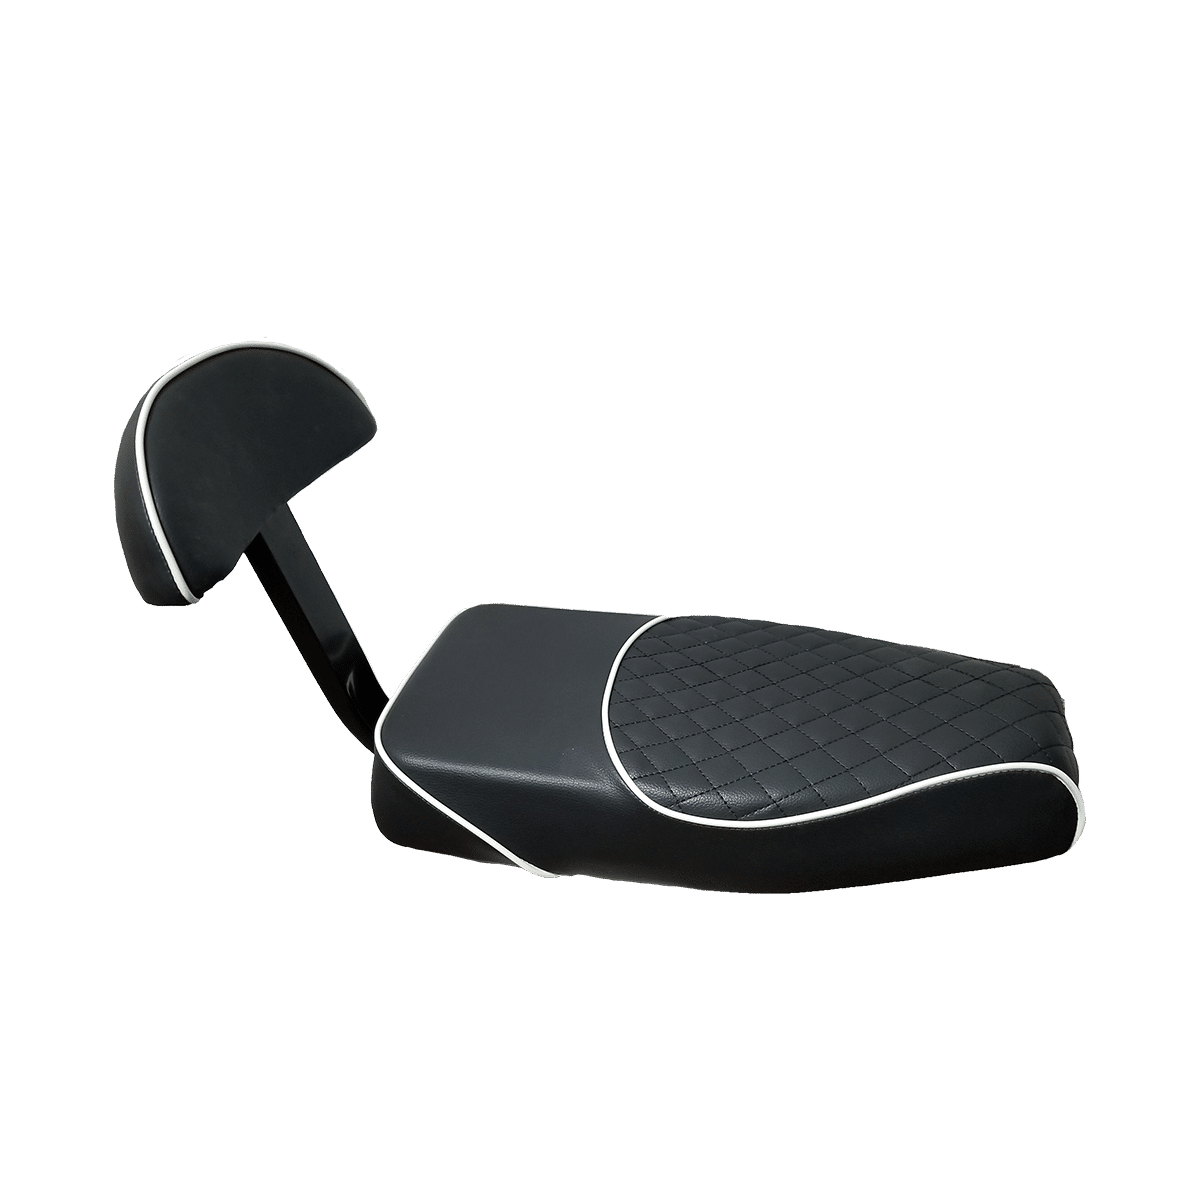 Selle double Caigiees et Caigiees S